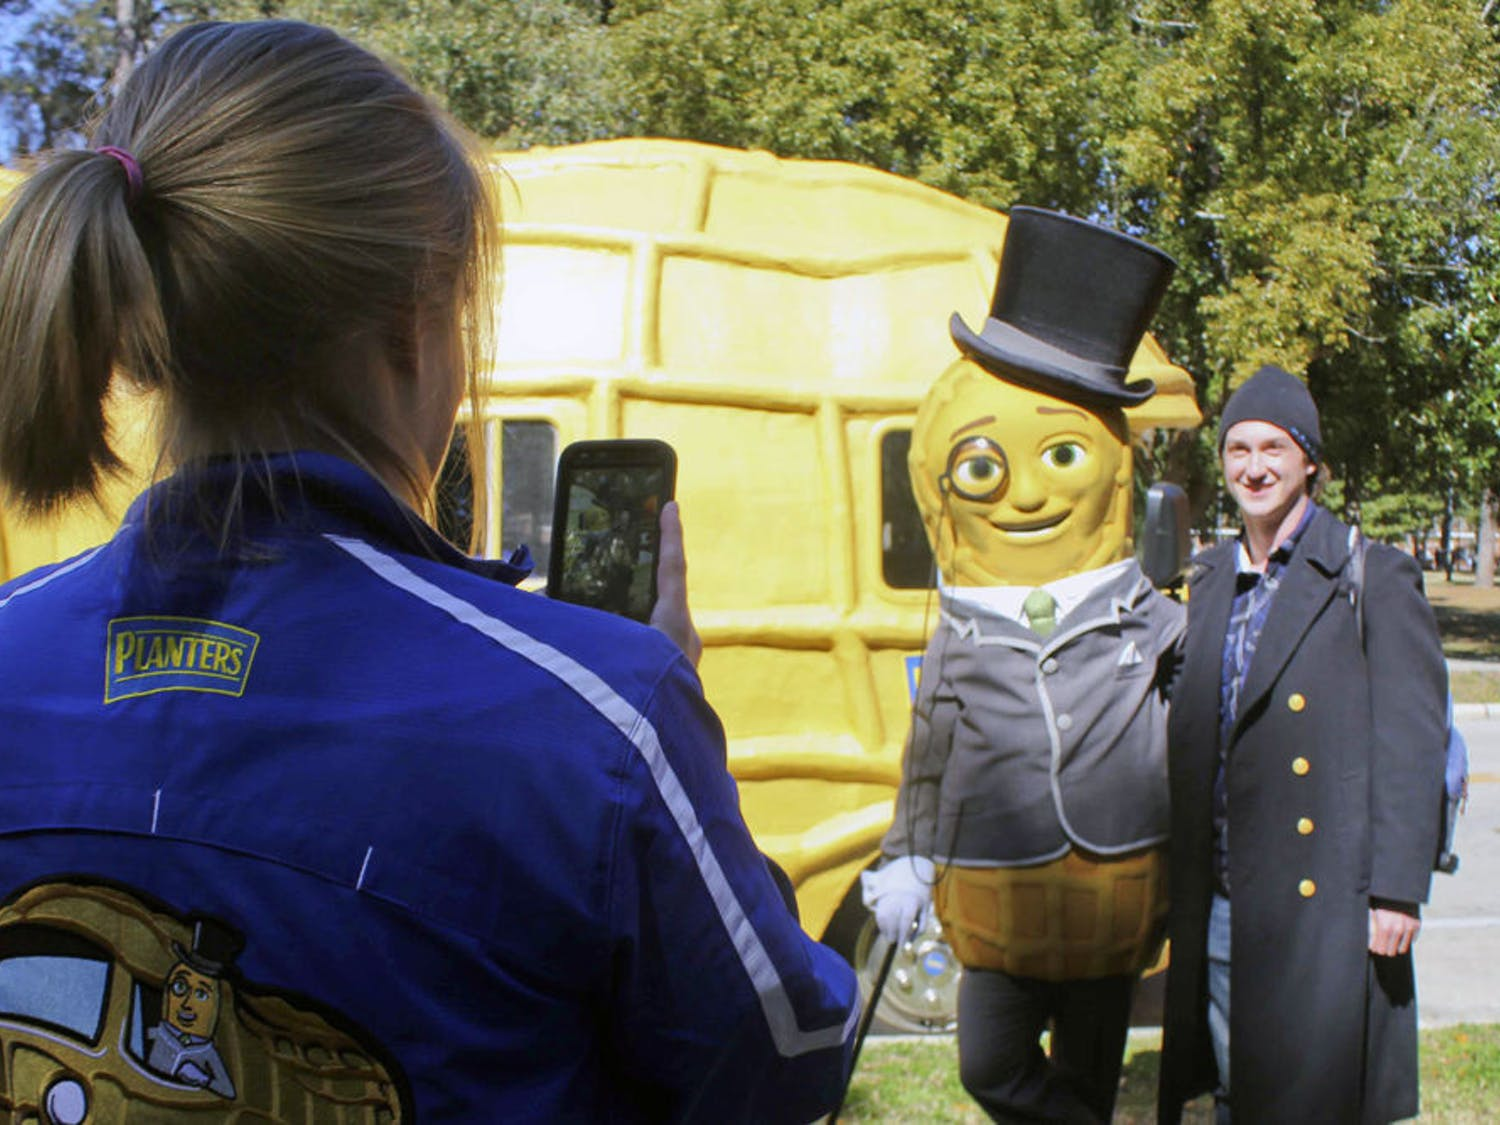 """Liz Johnson, a 23-year-old """"peanutter"""" who travels with the Planters NUTmobile, photographs Mr. Peanut and Billy Schap, a 22-year-old UF astronomy senior, near Plaza of the Americas on Thursday."""